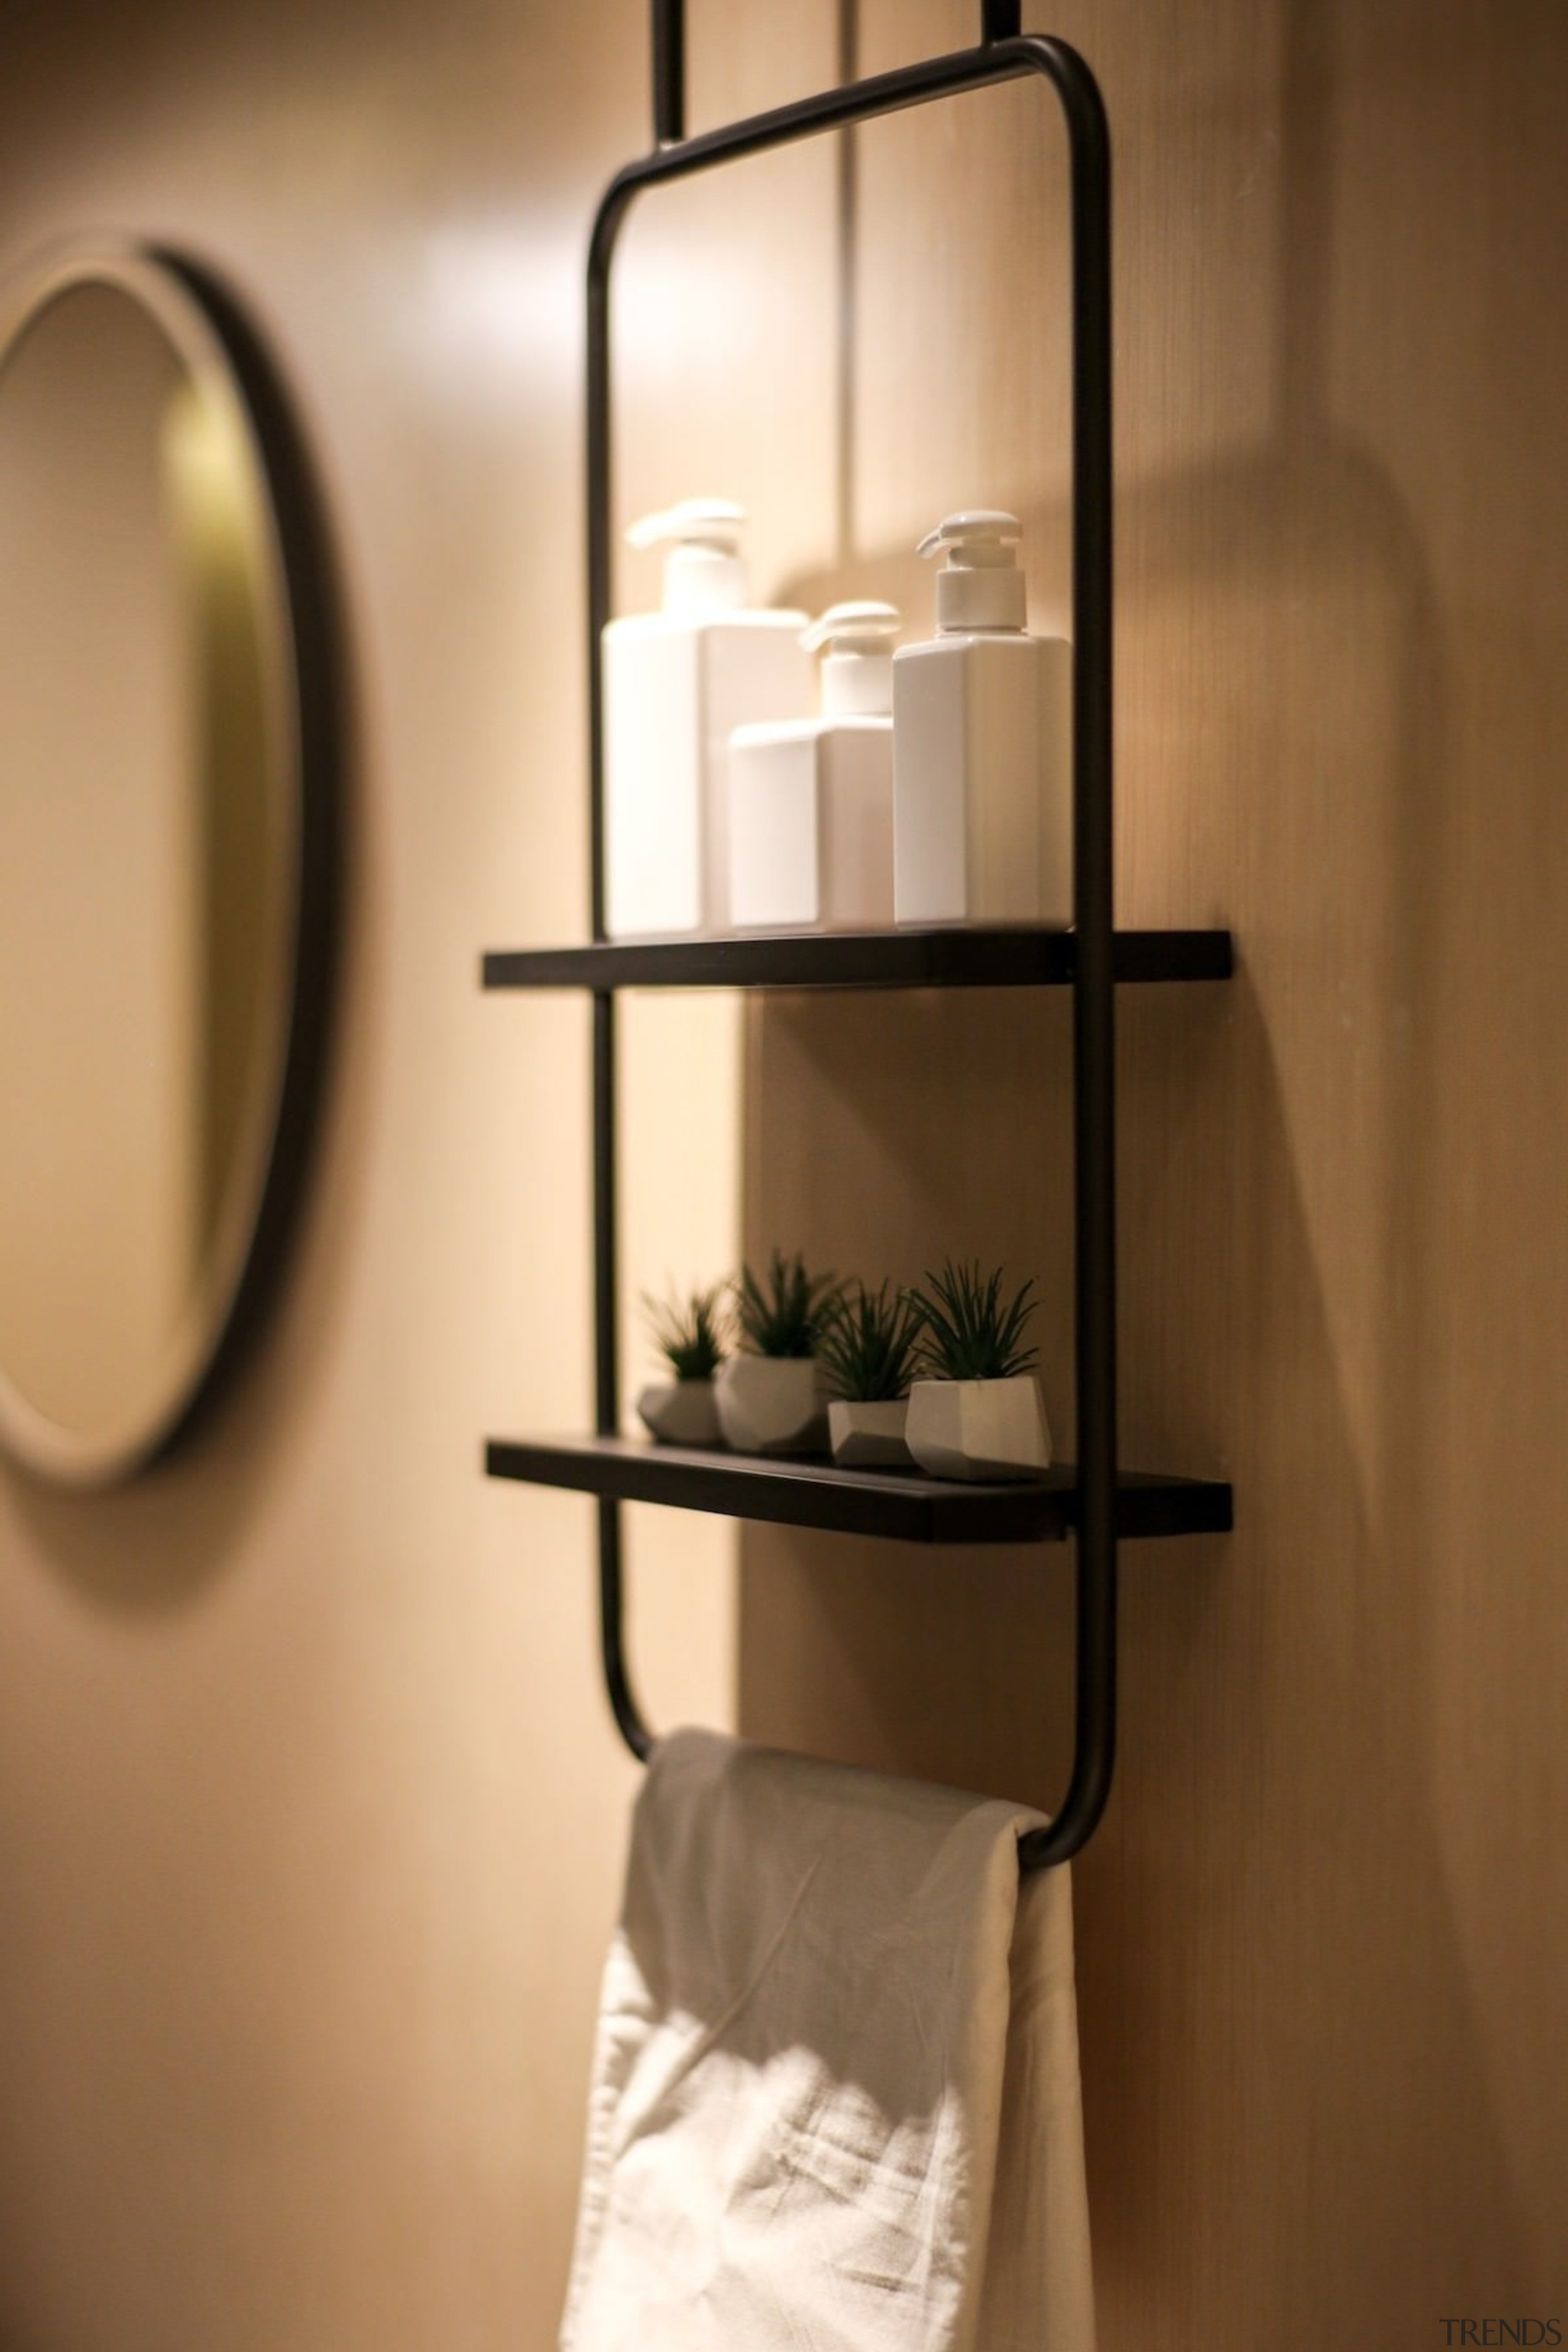 Hotel Ease Access - Hotel Ease Access - furniture, light fixture, product design, shelf, shelving, tap, brown, orange